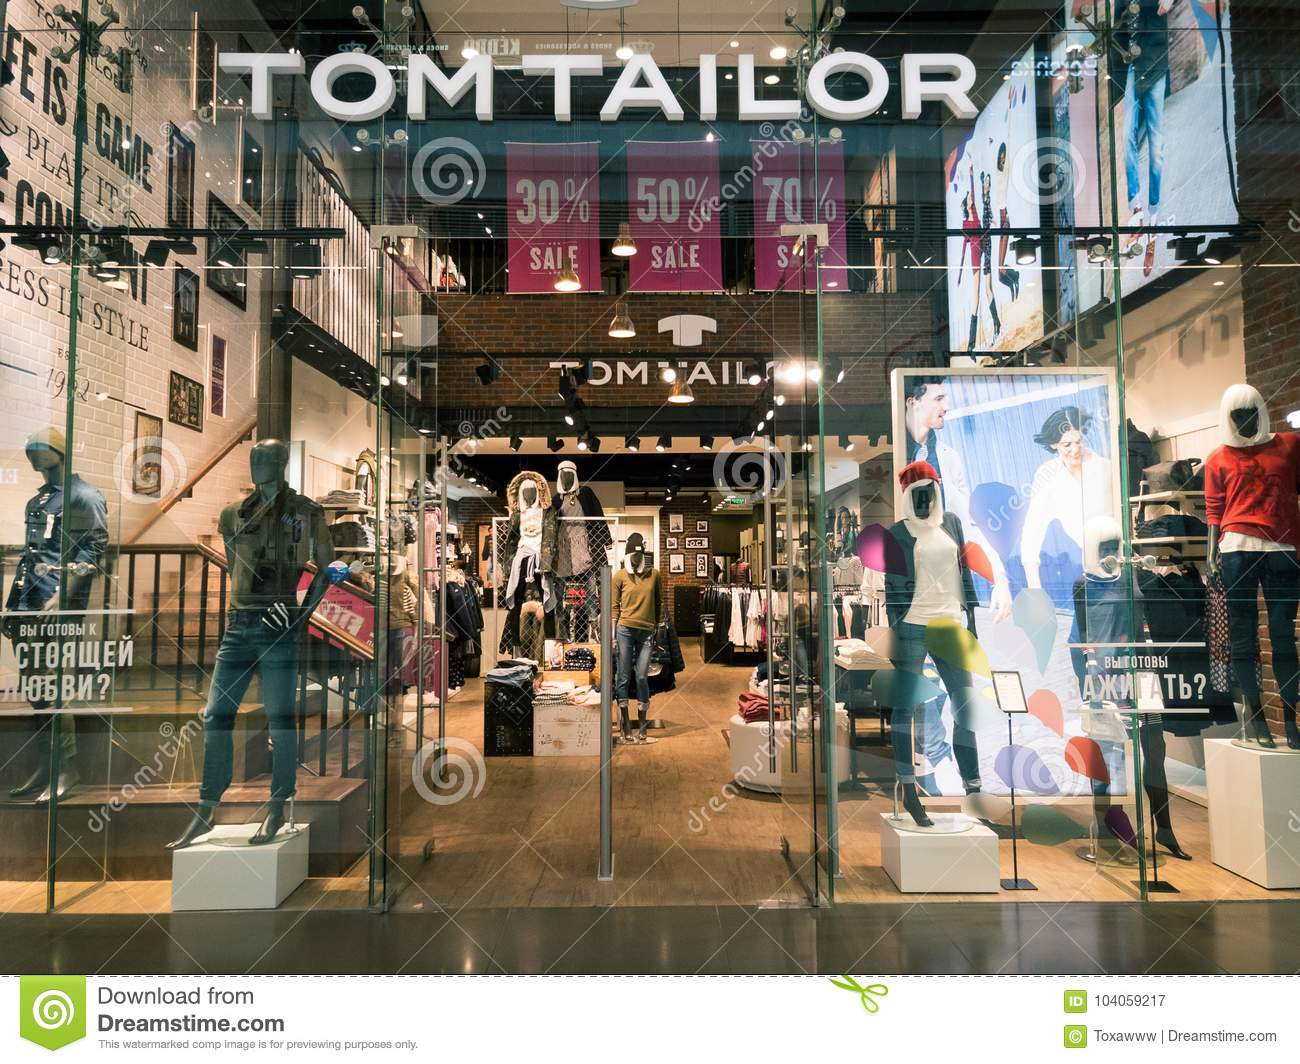 Www Tom Tailor Tom Tailor Clothing Shop Interior In The Columbus Mall Editorial